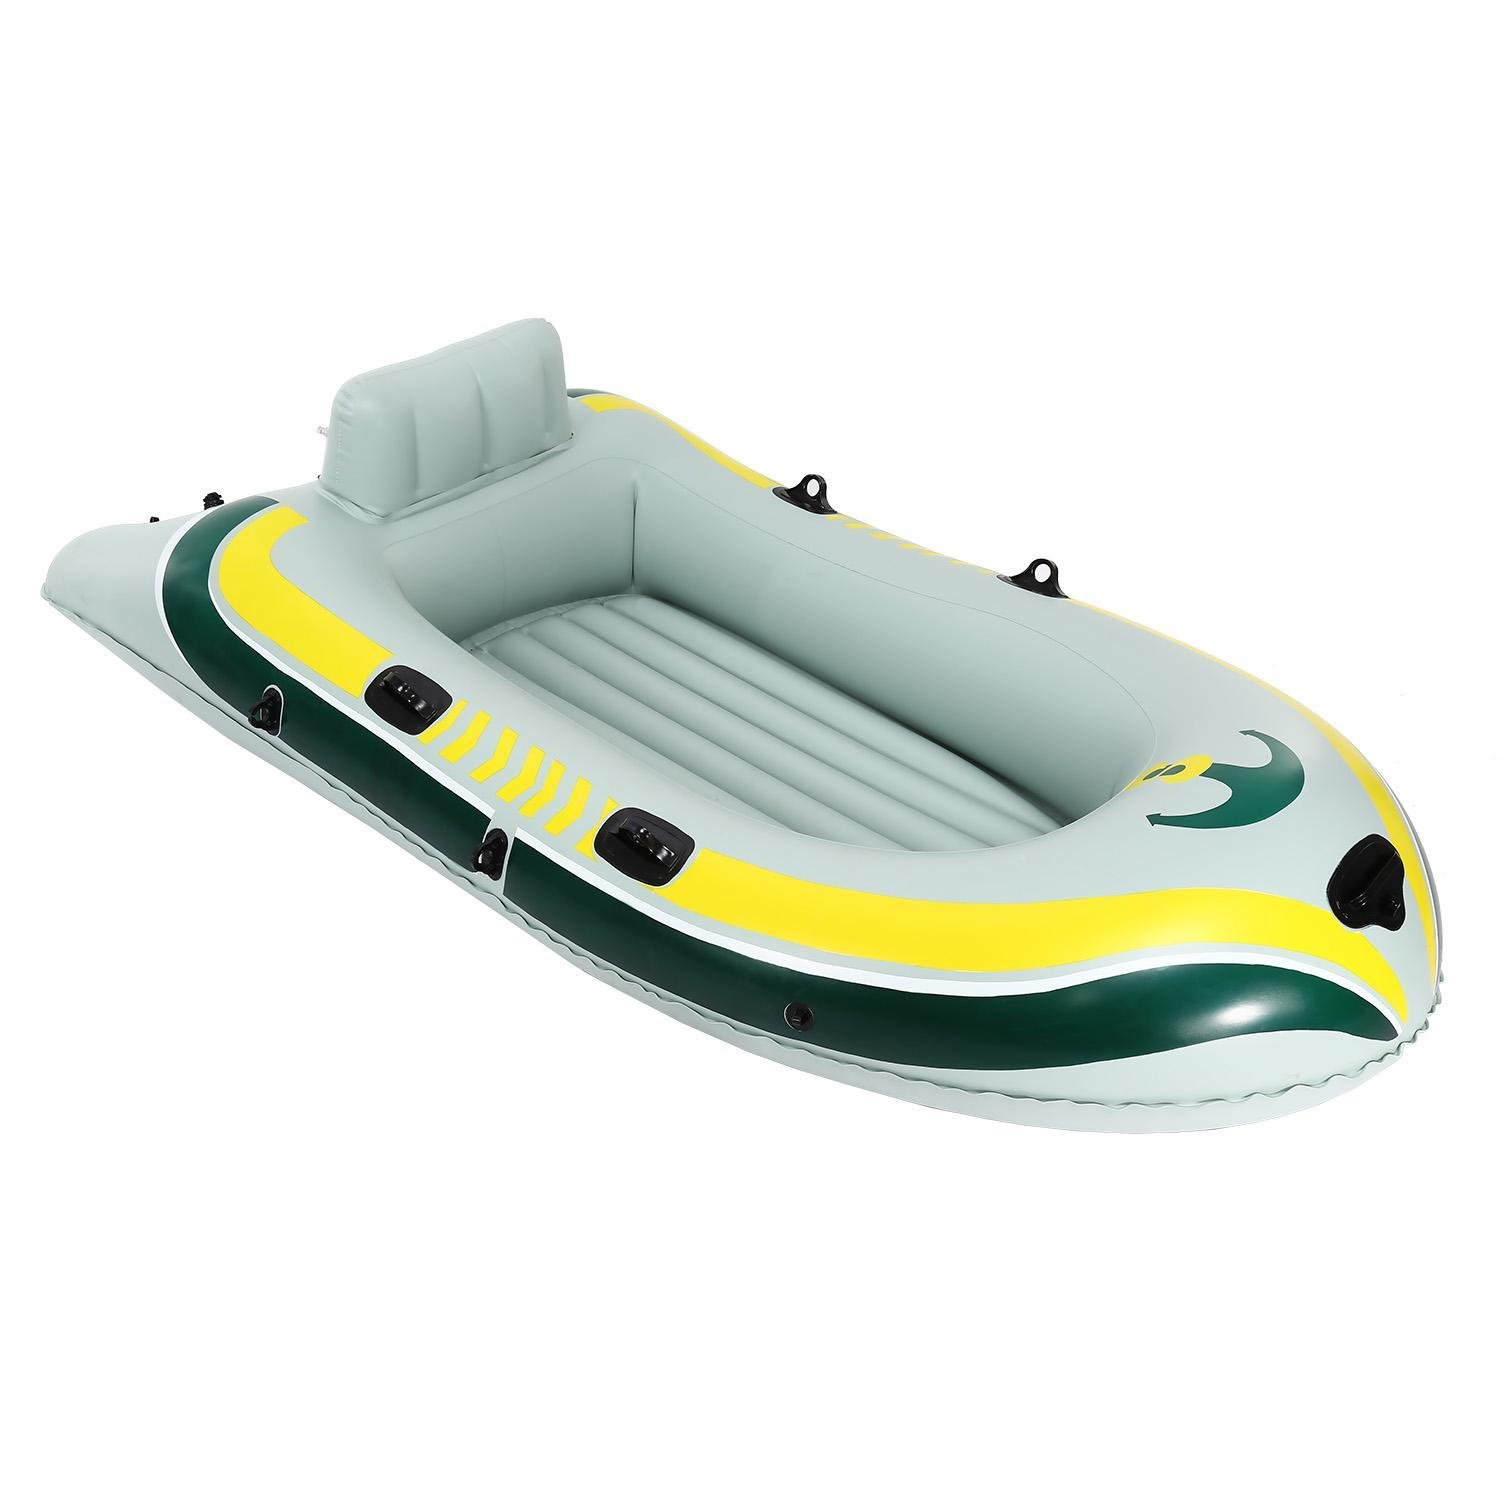 New PVC Inflatable 4 Person Large Boat Set with Pair-Oars and High Output Air Pump for Fishing, Sports, Rapids, Beach, Party & Fun (US STOCK)